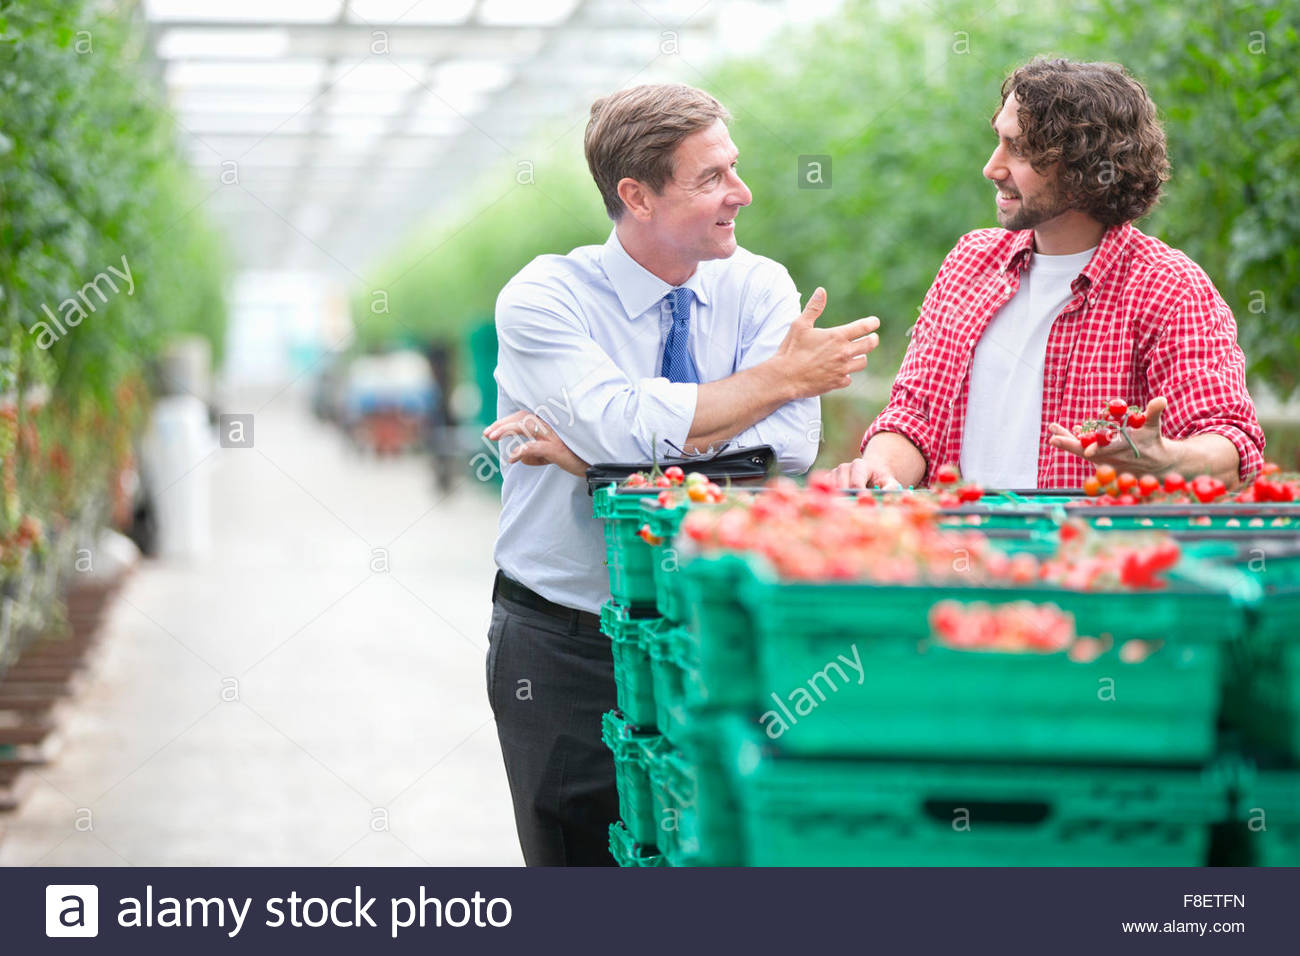 Businessman and grower discussing ripe tomatoes in crates in greenhouse - Stock Image